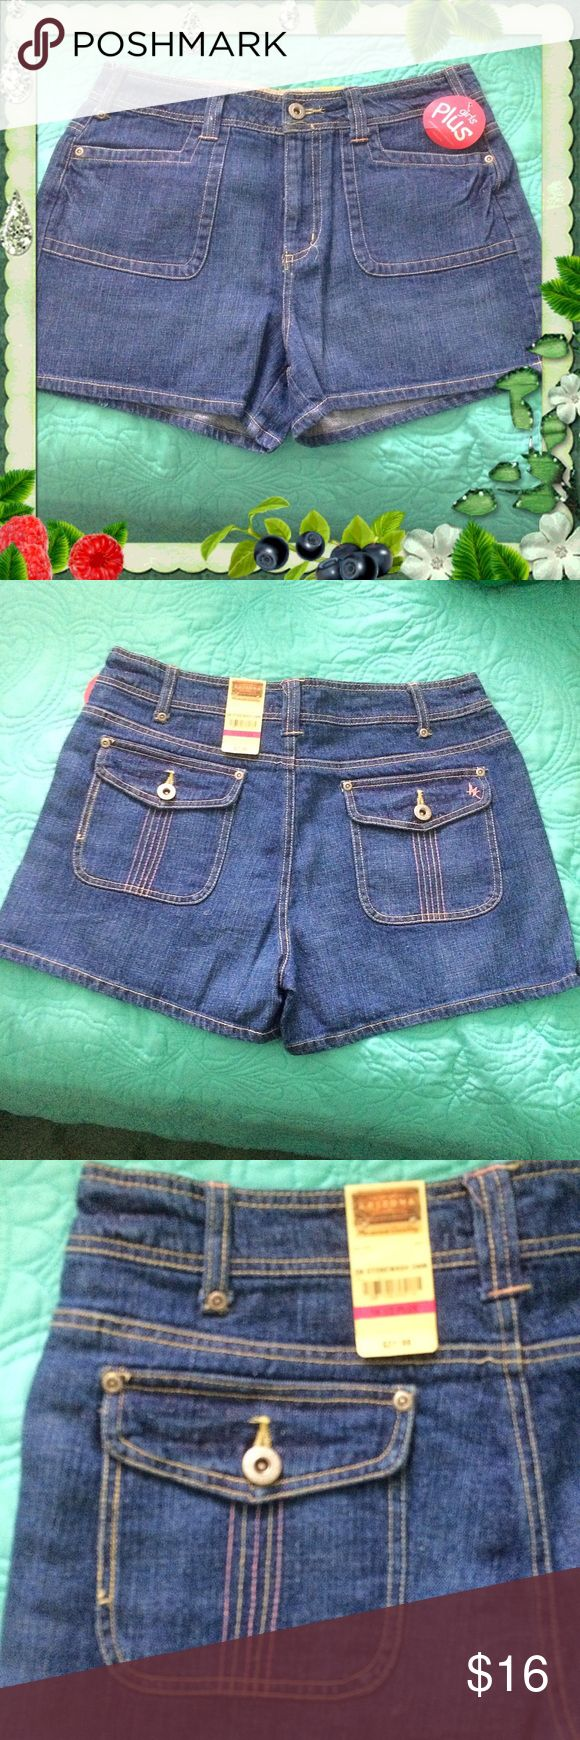 """Arizona Stonewashed Denim Shorts NWT / Plus 14 1/2 Arizona Stonewashed Denim Shorts - New with tags - Plus 14 1/2 - Waist 32"""" to 33"""" - Two front pockets - Two back pockets. Please feel free to make an offer - Enjoy BIG discounts on bundles & save $$$ on shipping! I do not comment to my buyers after their purchases for privacy reasons - If you would like to know that I received your order ask on the listing & I will respond.  I ship fast & package safely! TY 💜💜💜 A5 Arizona Jean Company…"""